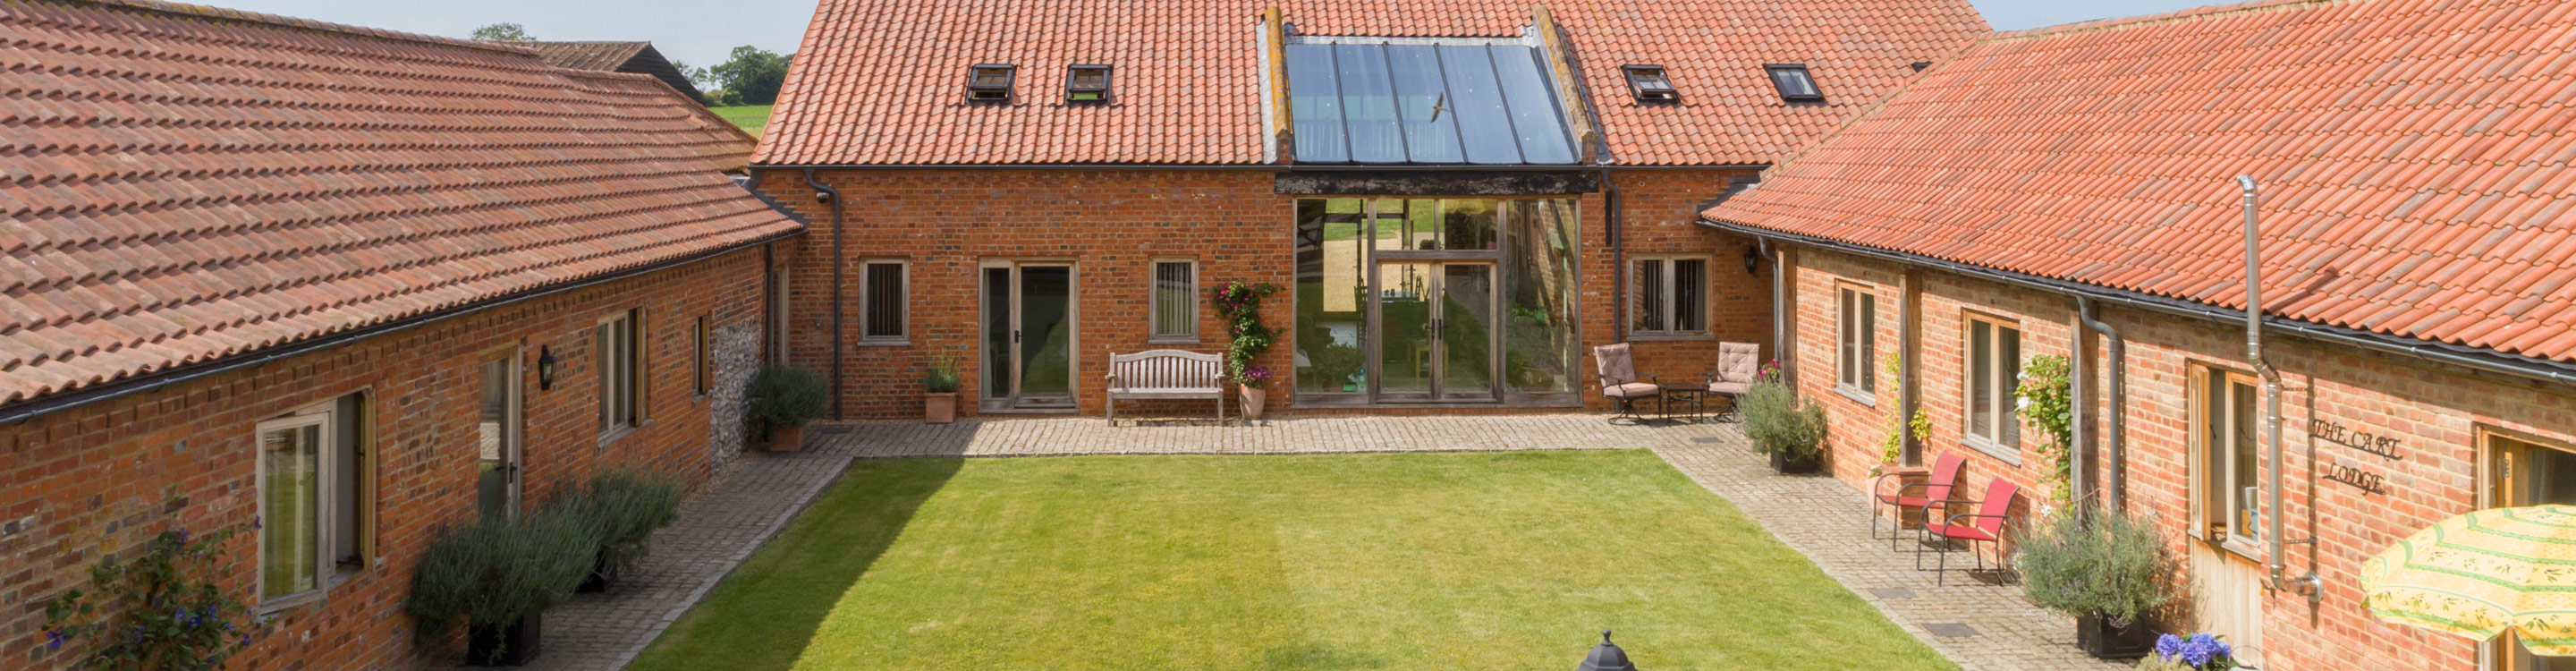 West Heath Barn Luxury Bed & Breakfast and Self-Catering Accommodation in Norfolk